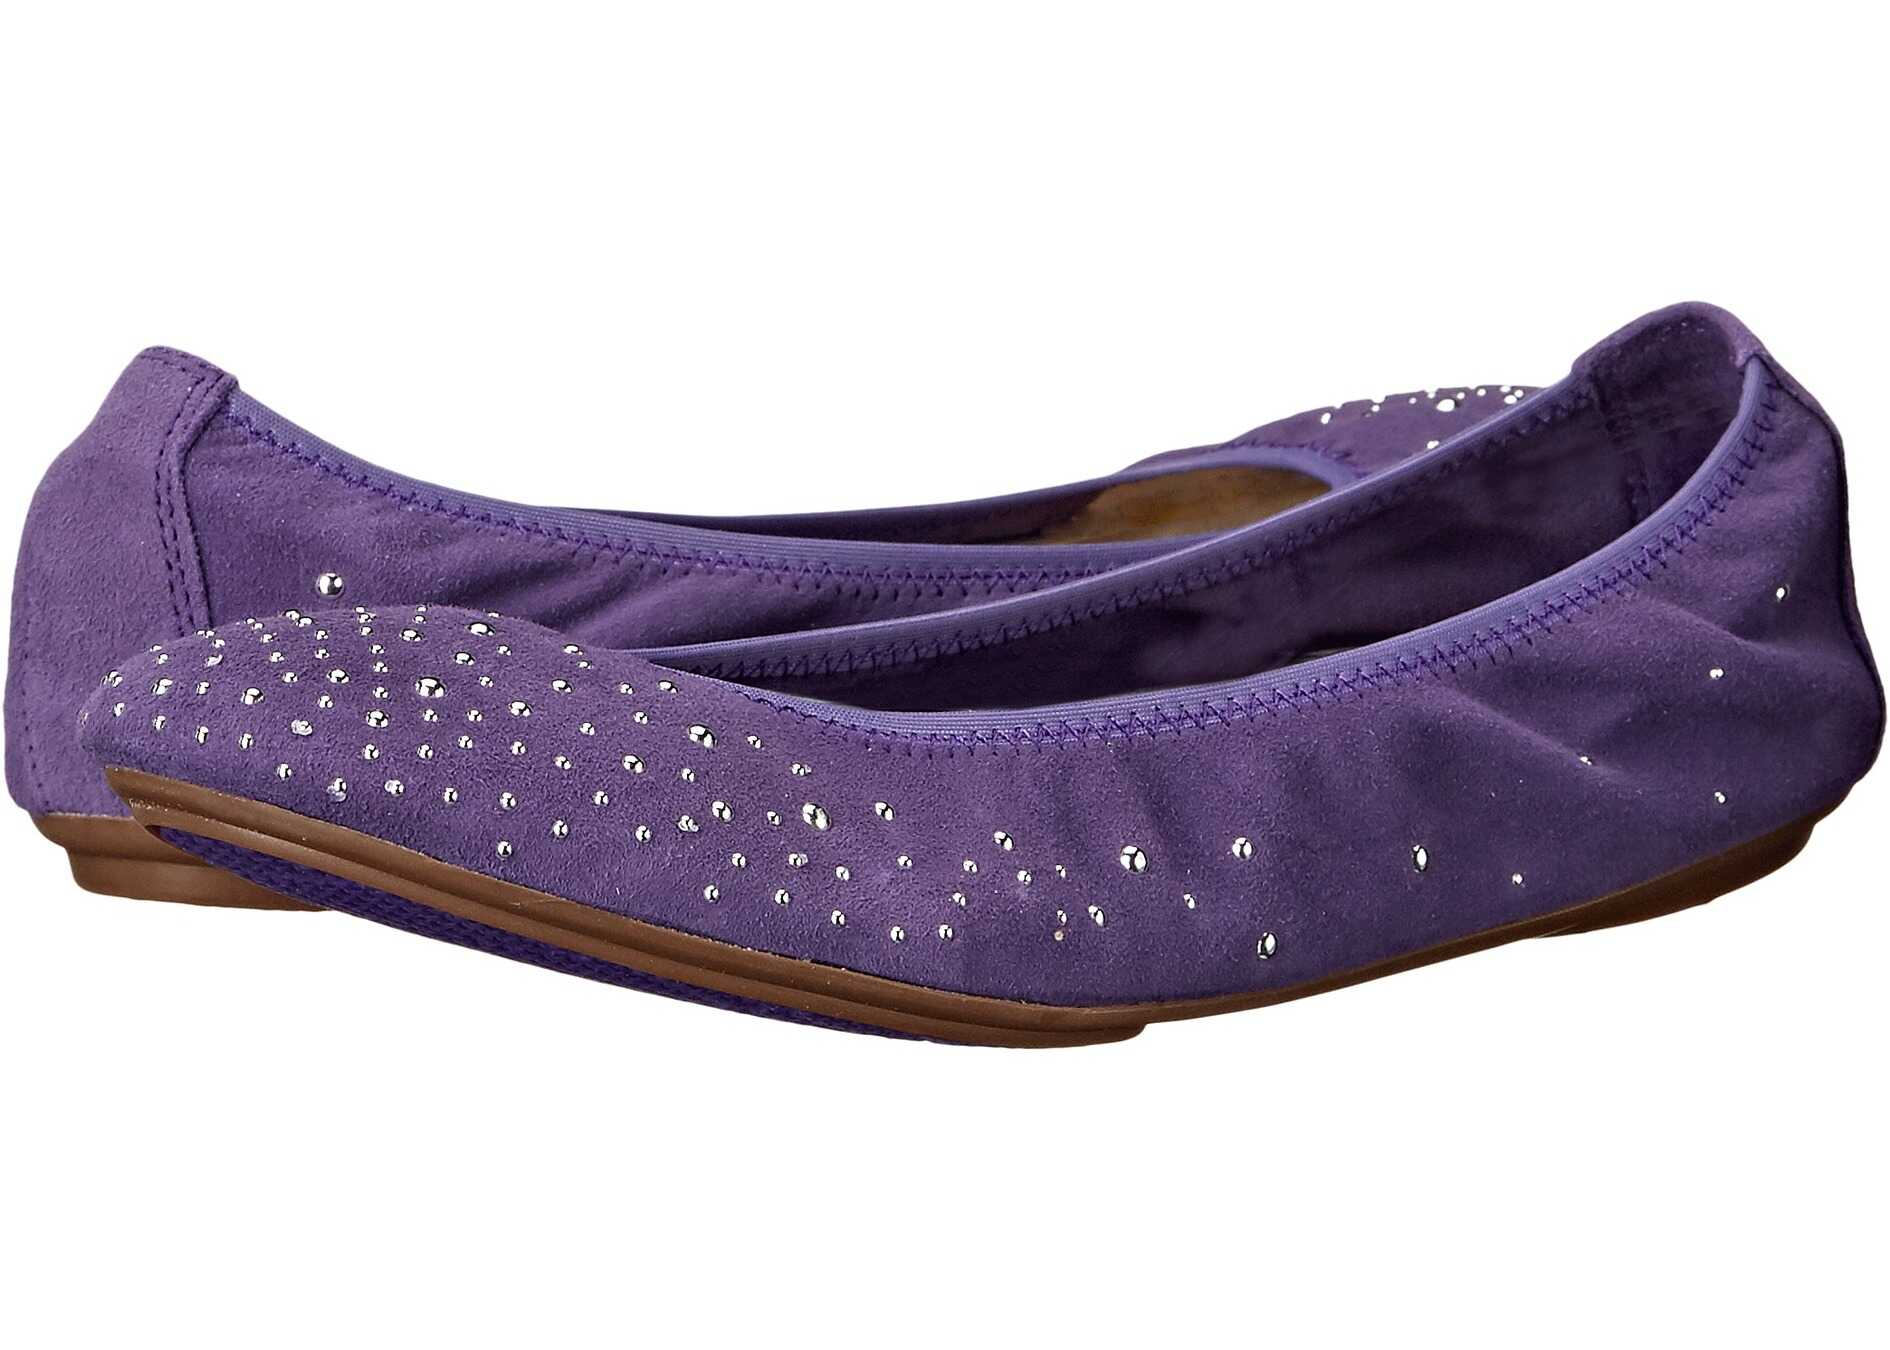 Hush Puppies Lolly Chaste Purple Suede